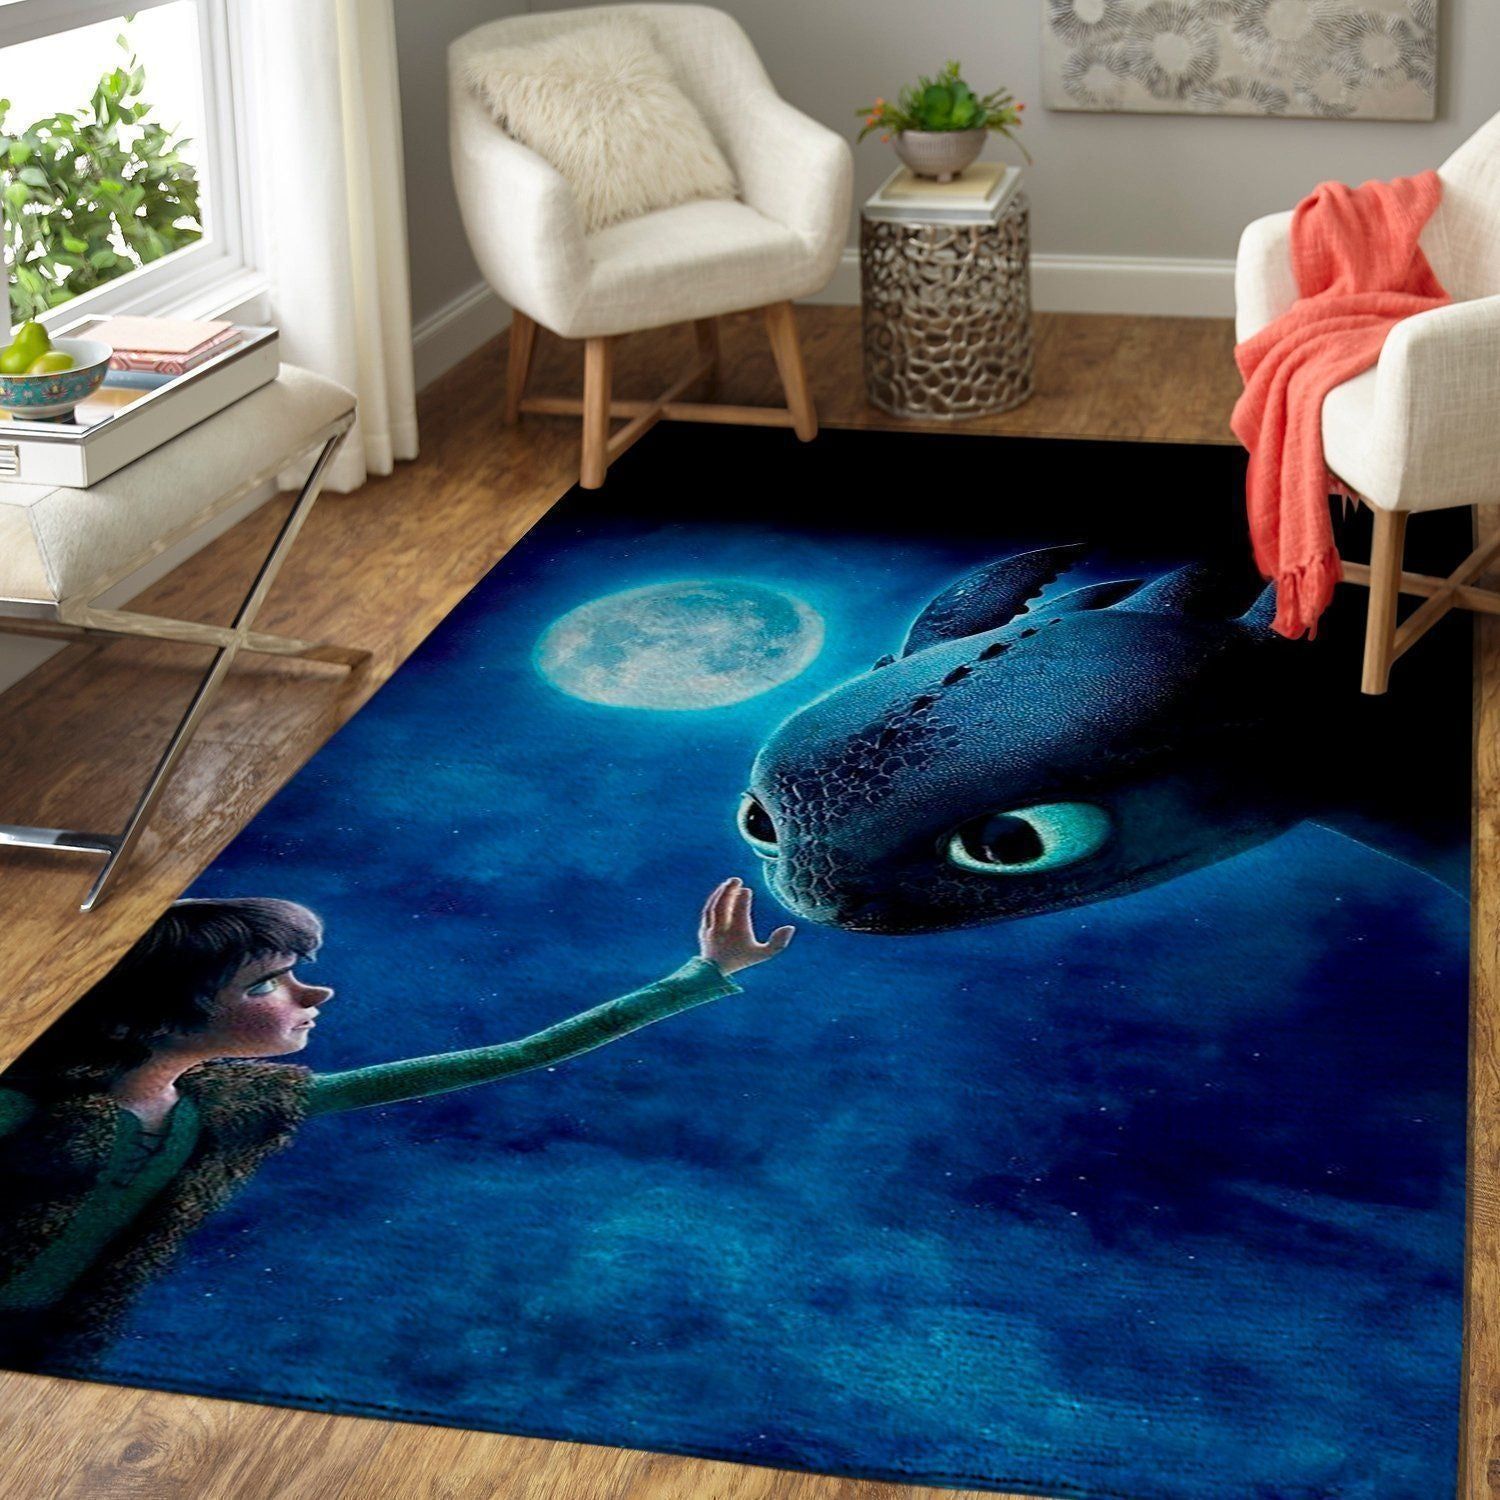 How To Train Your Dragon Area Rugs / Movie Living Room Carpet, Custom Floor Decor